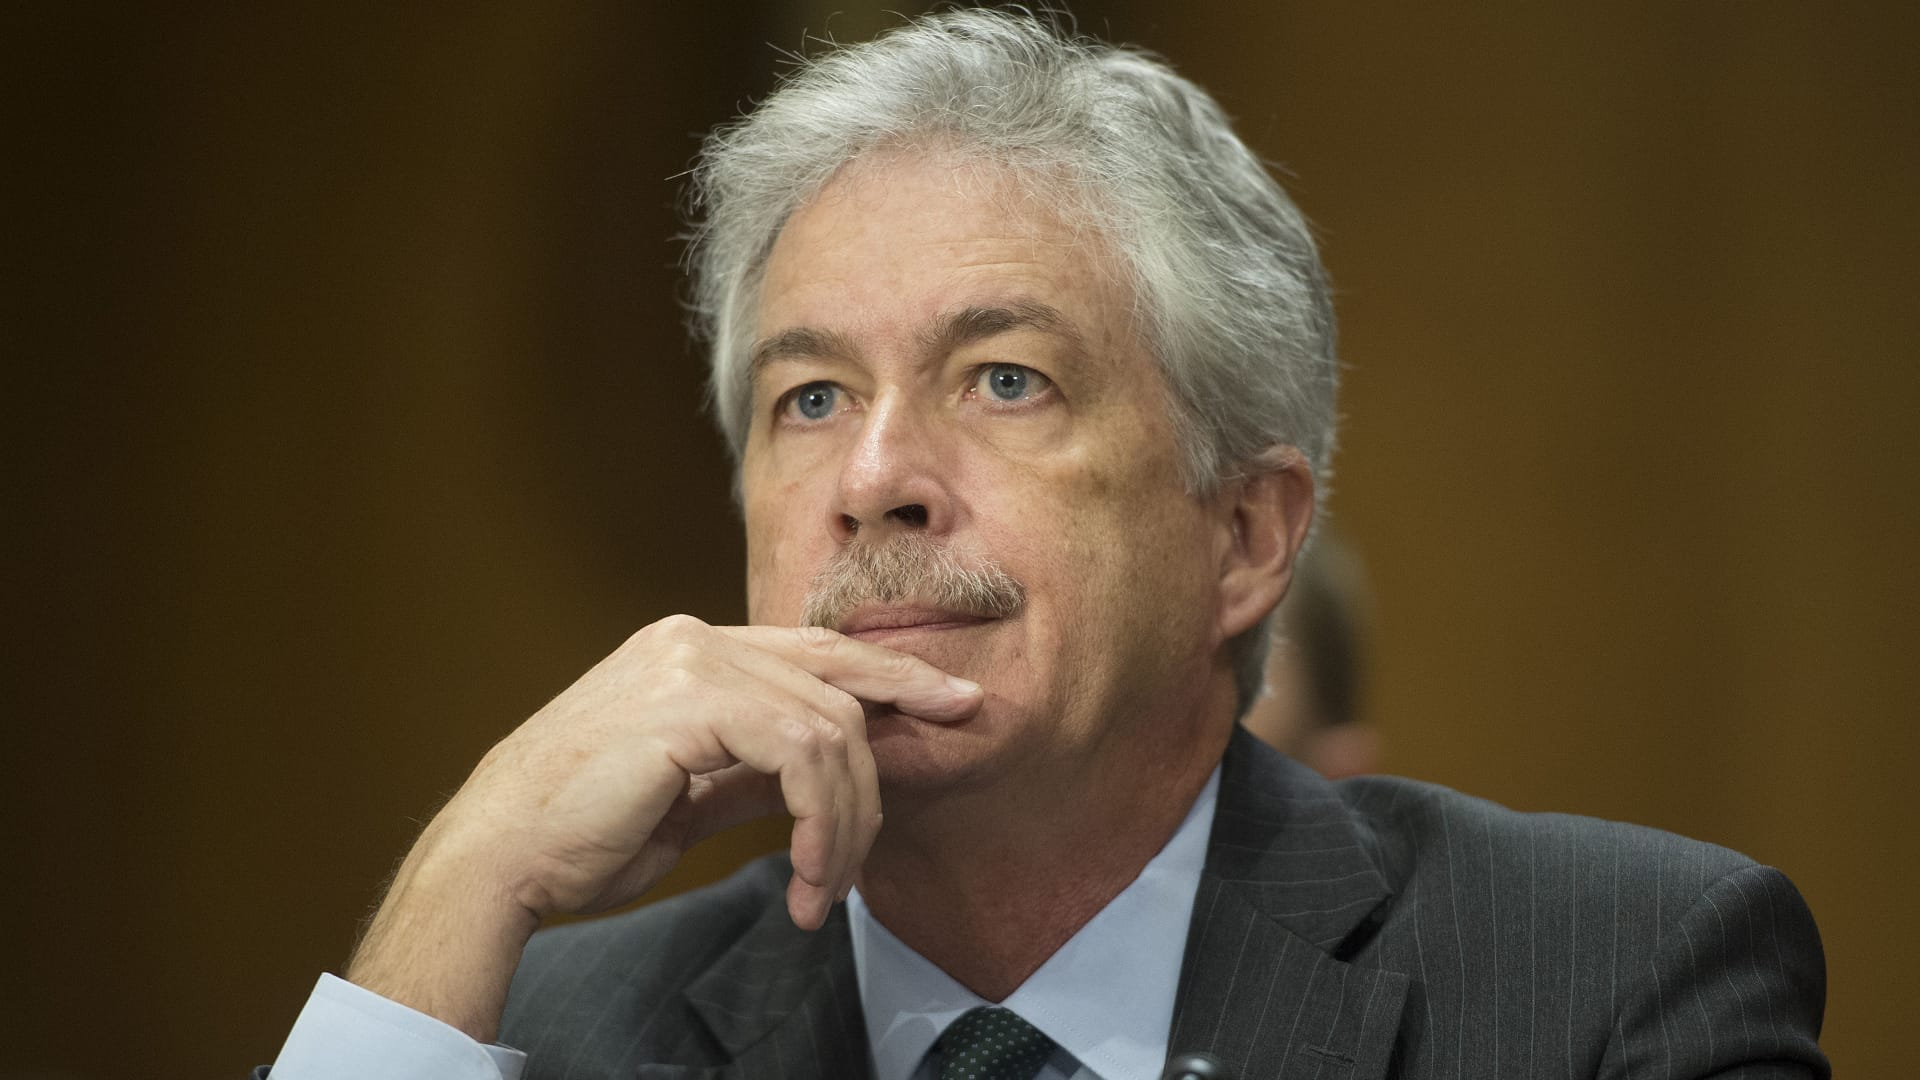 File photo of Deputy Secretary of State William Burns testifies on the current situation in Syria and the Ukraine to the Senate Foreign Relations Committee on Capitol Hill in Washington, DC, March 6, 2014.